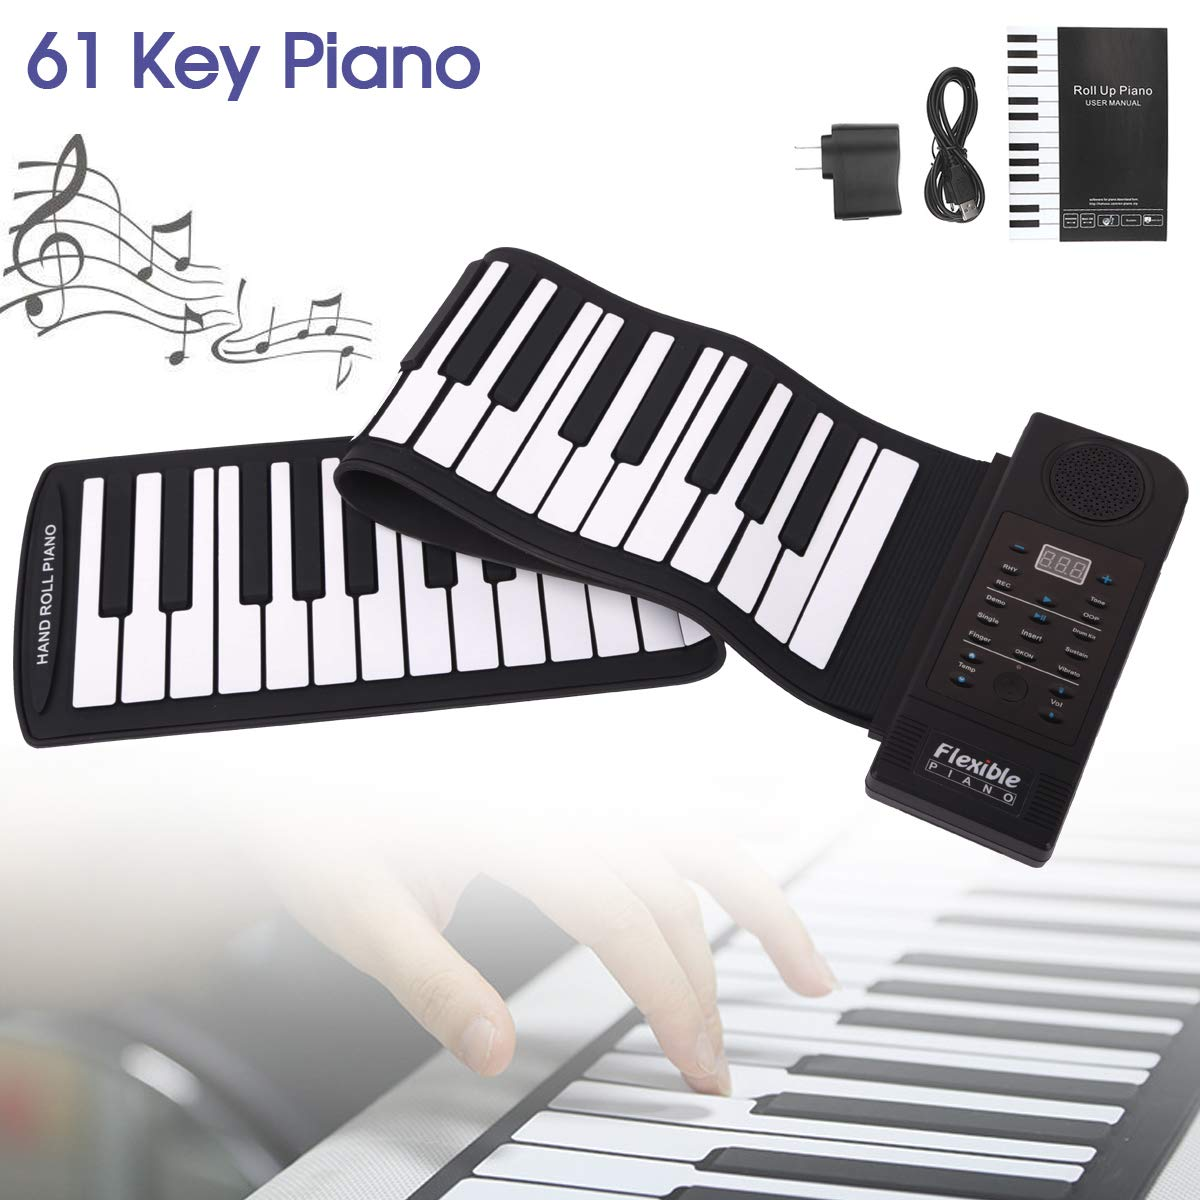 OriGlam Portable Roll Up Piano, Digital Electronic Piano Keyboard, 61 Keys Soft Silicone Flexible Foldable Keyboard, Built-in Speaker, Supports USB MIDI Output, Music Gifts for Women Men Kids by OriGlam